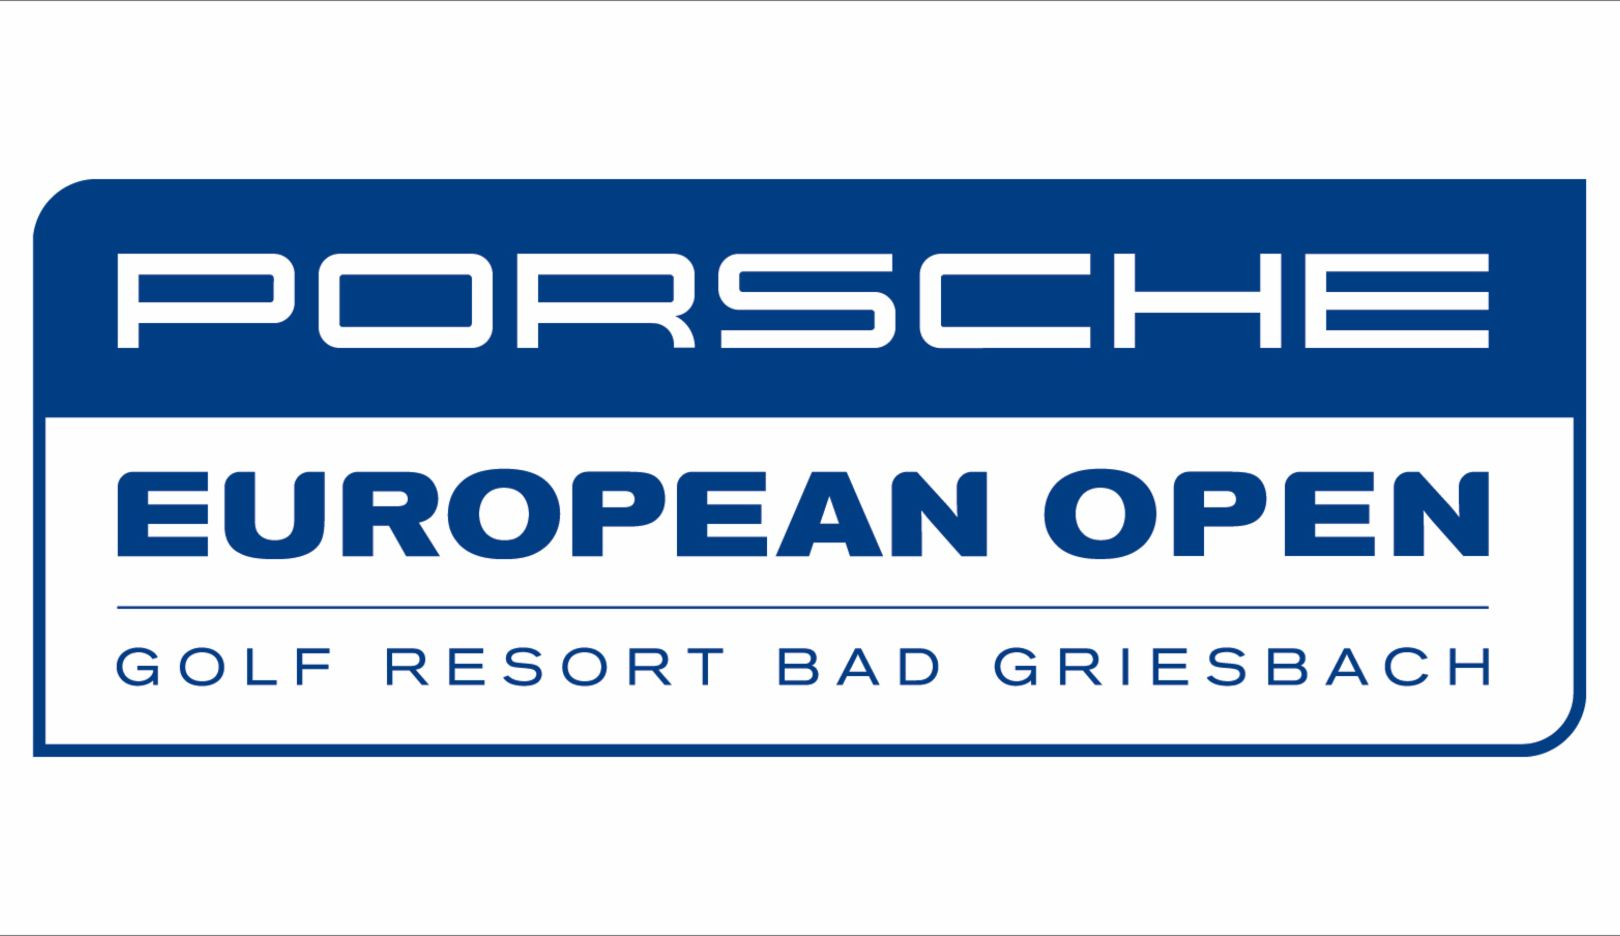 Porsche European Open, Golf Resort Bad Griesbach, logo, 2015, Porsche AG